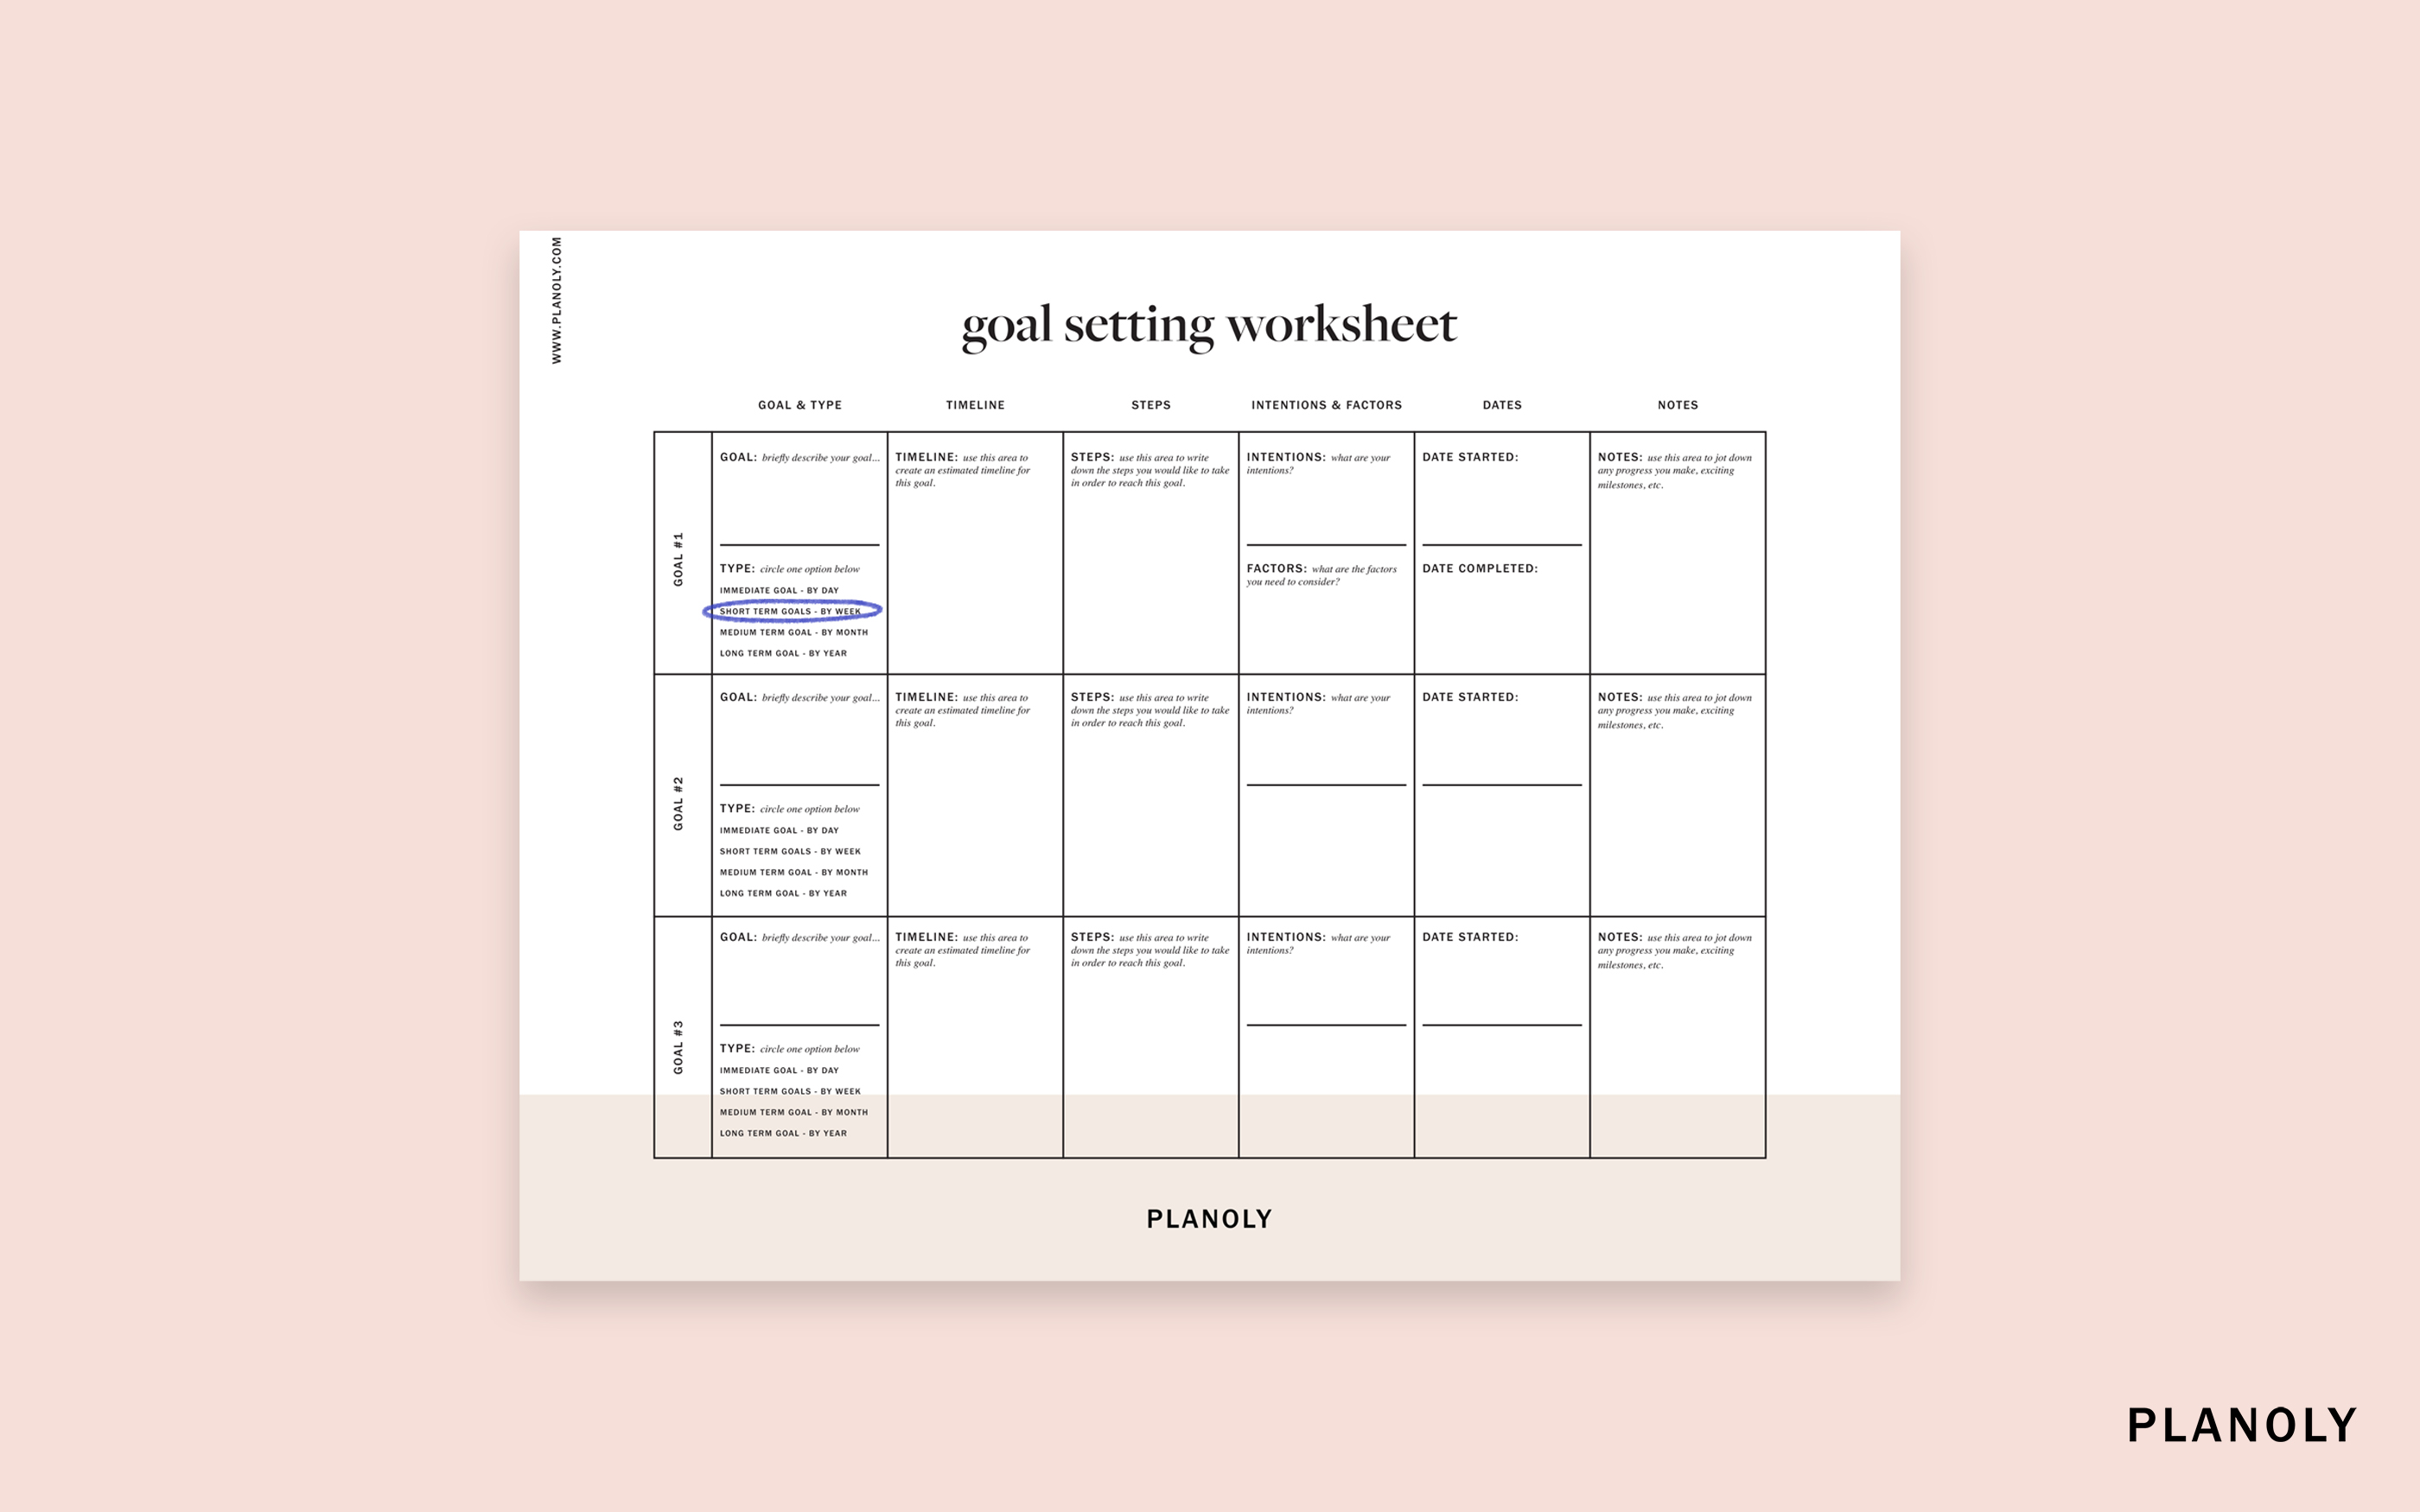 Planoly S Influencer Goal Setting Worksheet